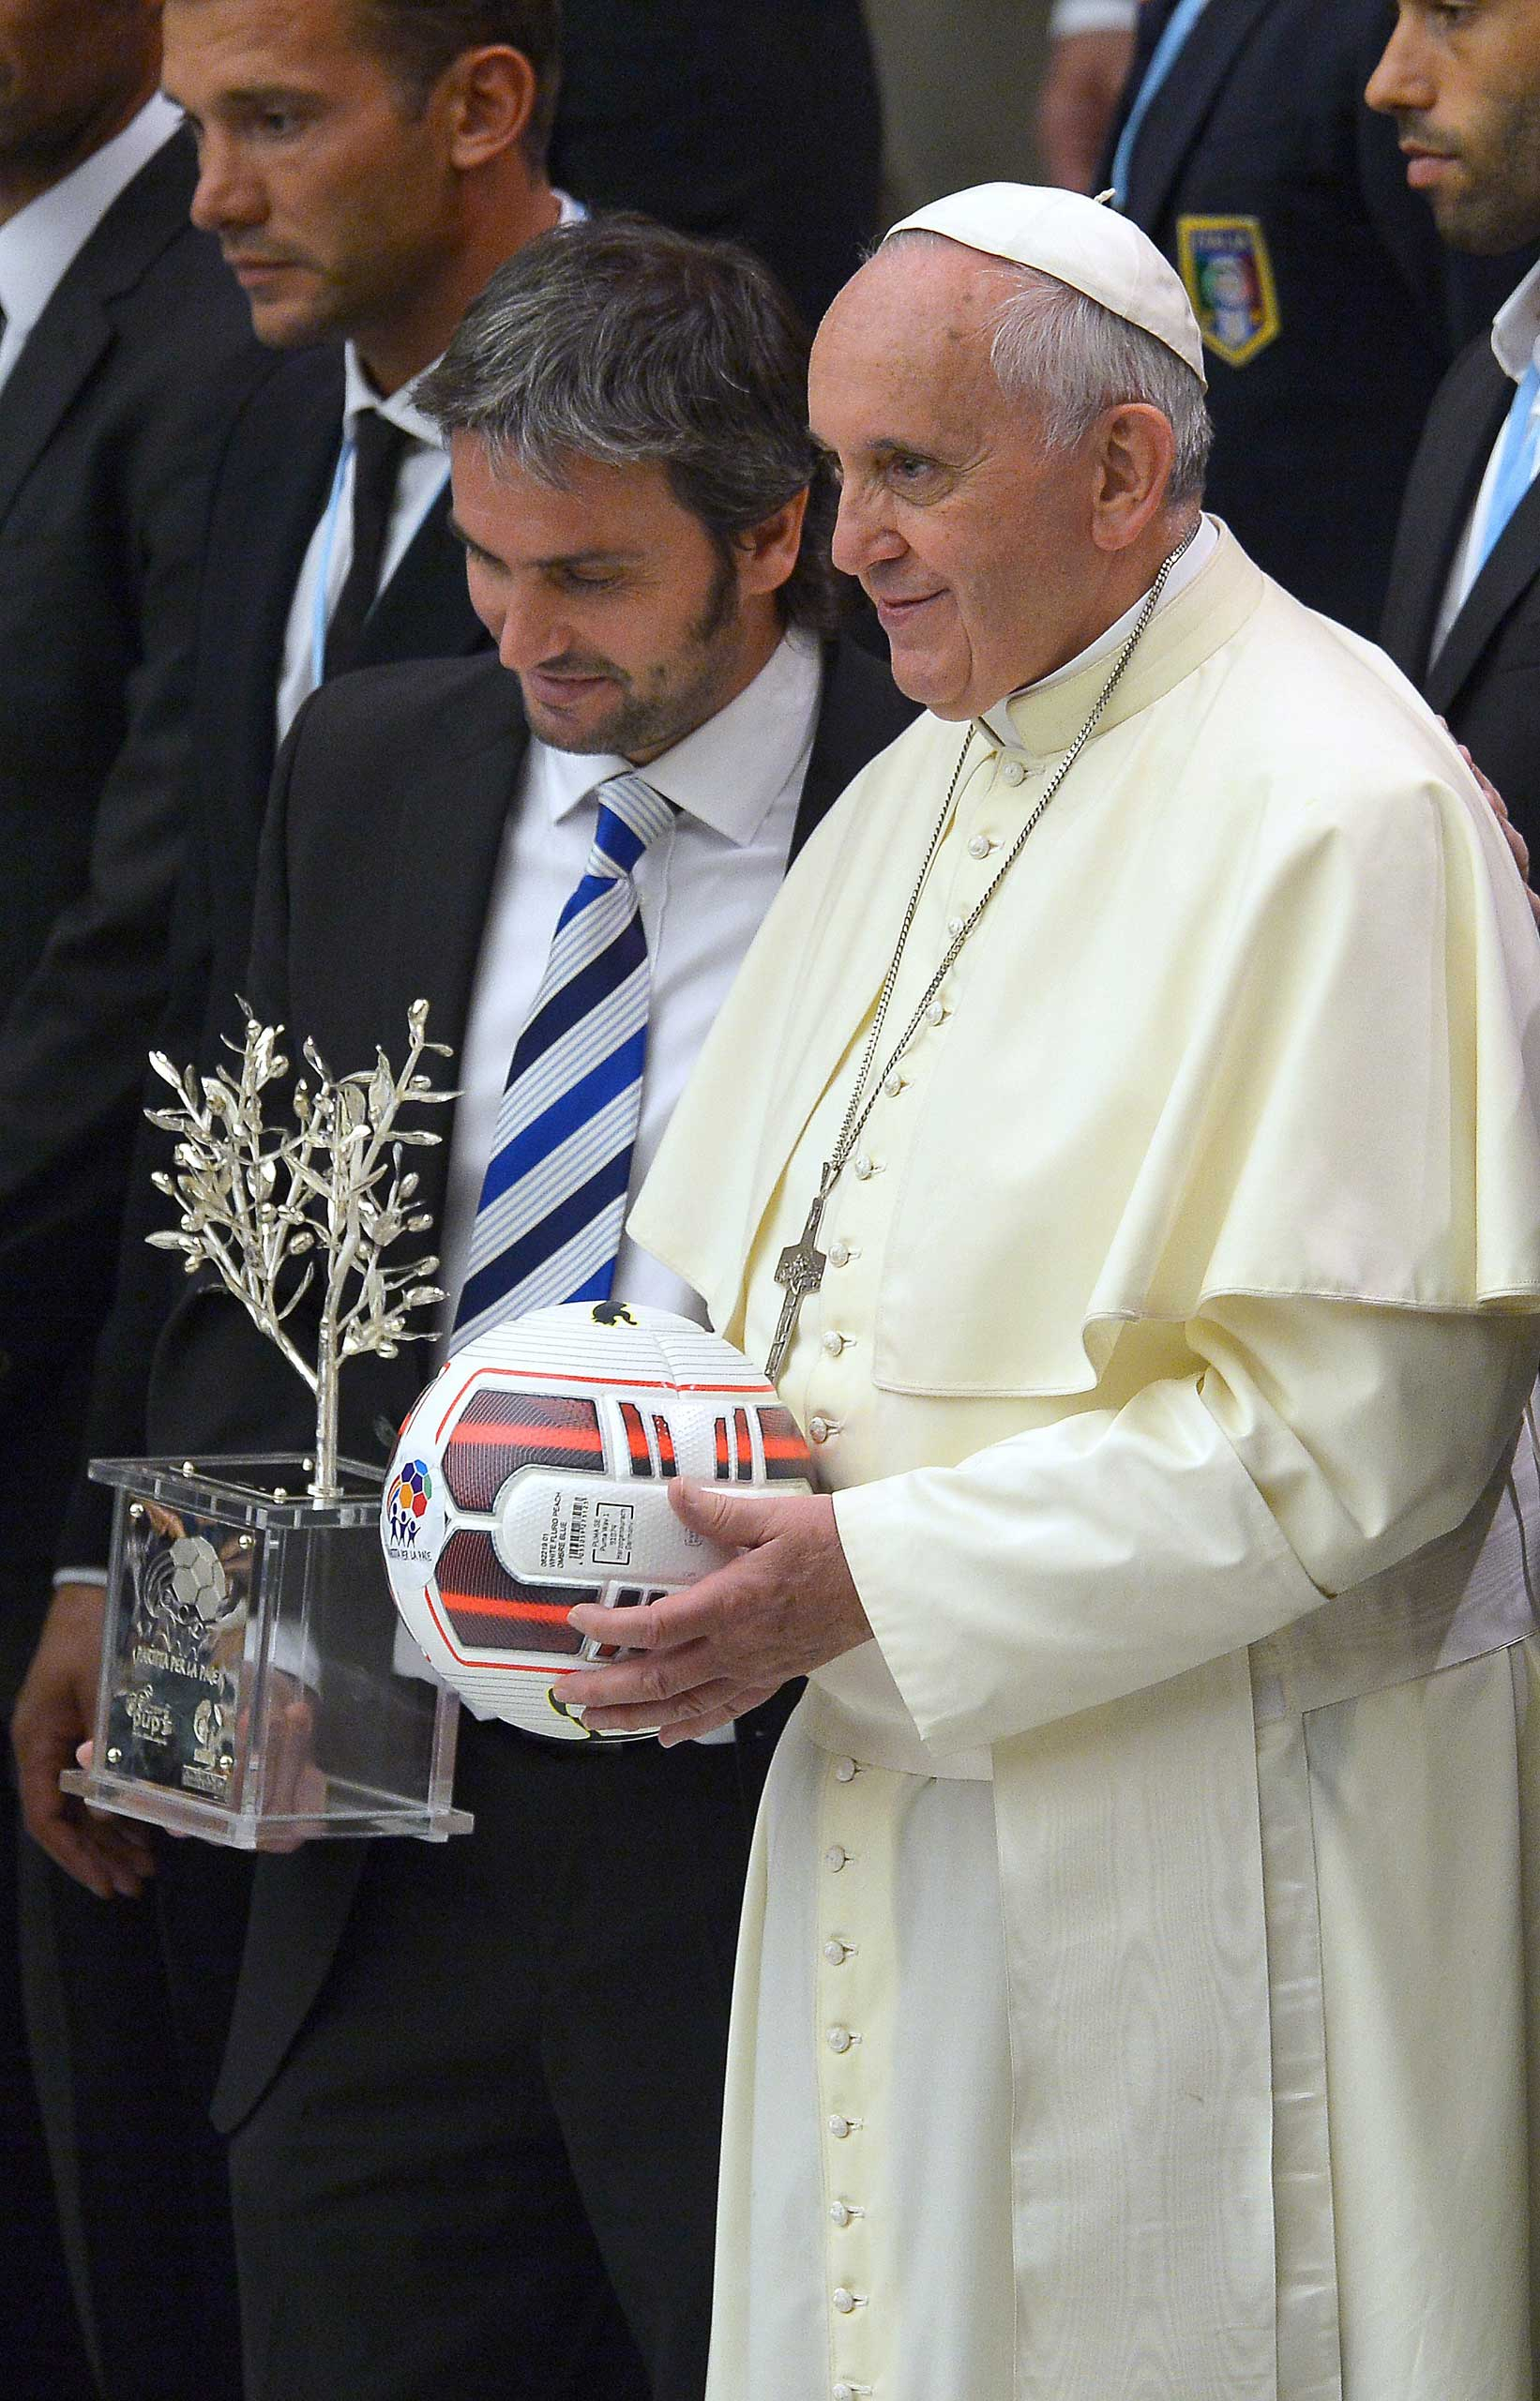 Argentinian silversmith Adrián Pallaros and Pope Francis pose with international soccer players at the Vatican on Sept. 2014 prior to an inter-religious  match for peace  soccer game that was played at Rome's Olympic Stadium.